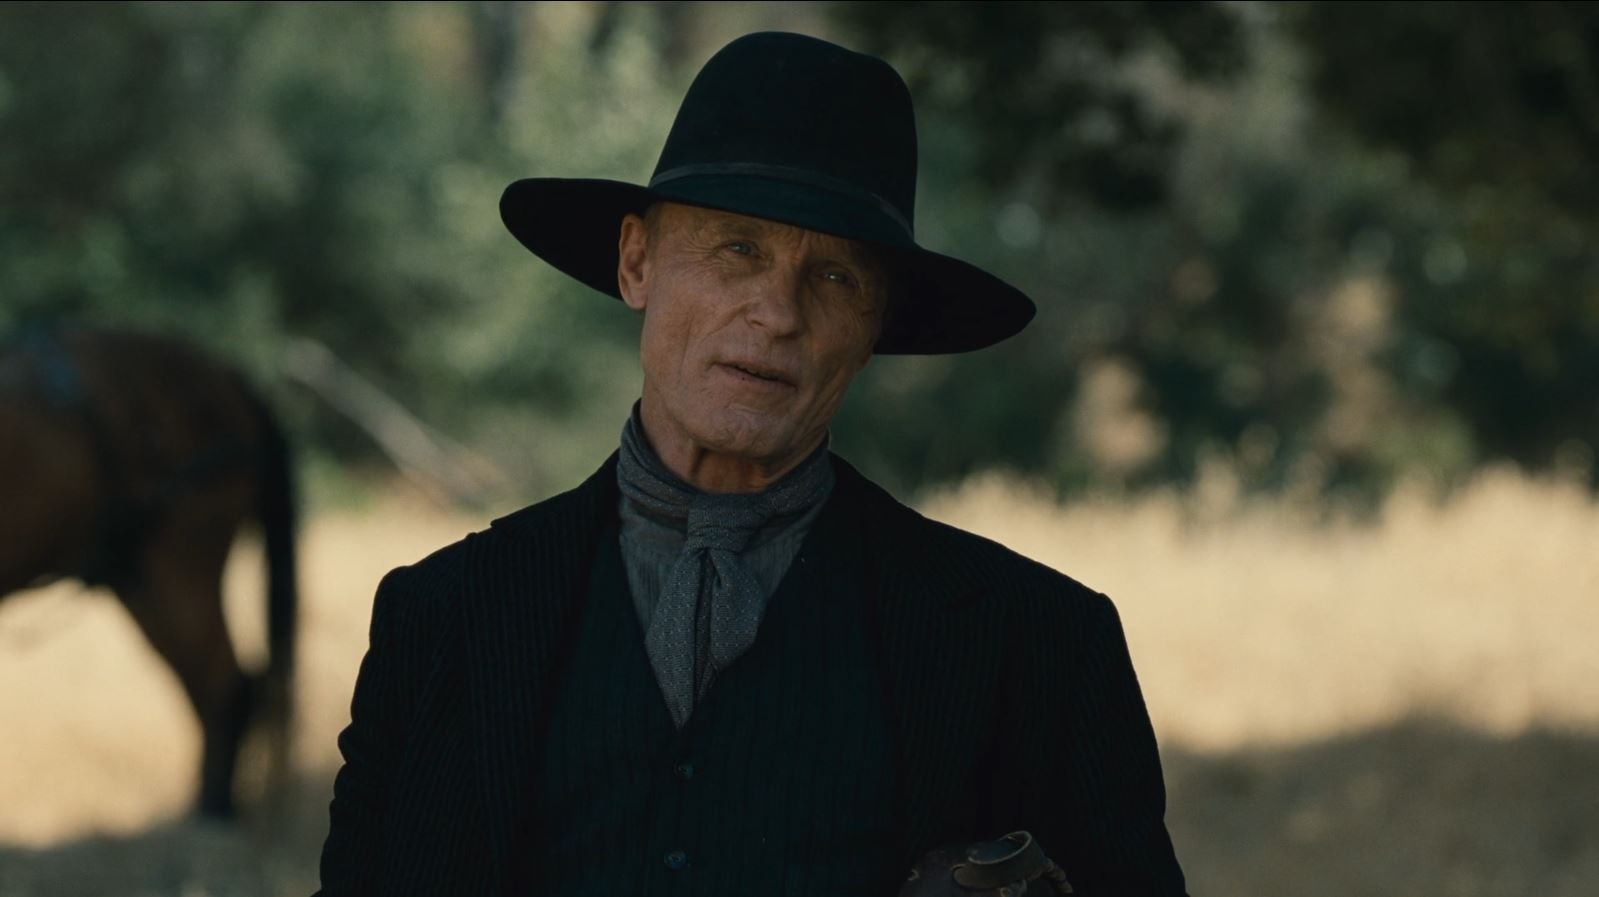 Westworld S02E01 Journey into Night Review - Ed Harris as the Man In Black